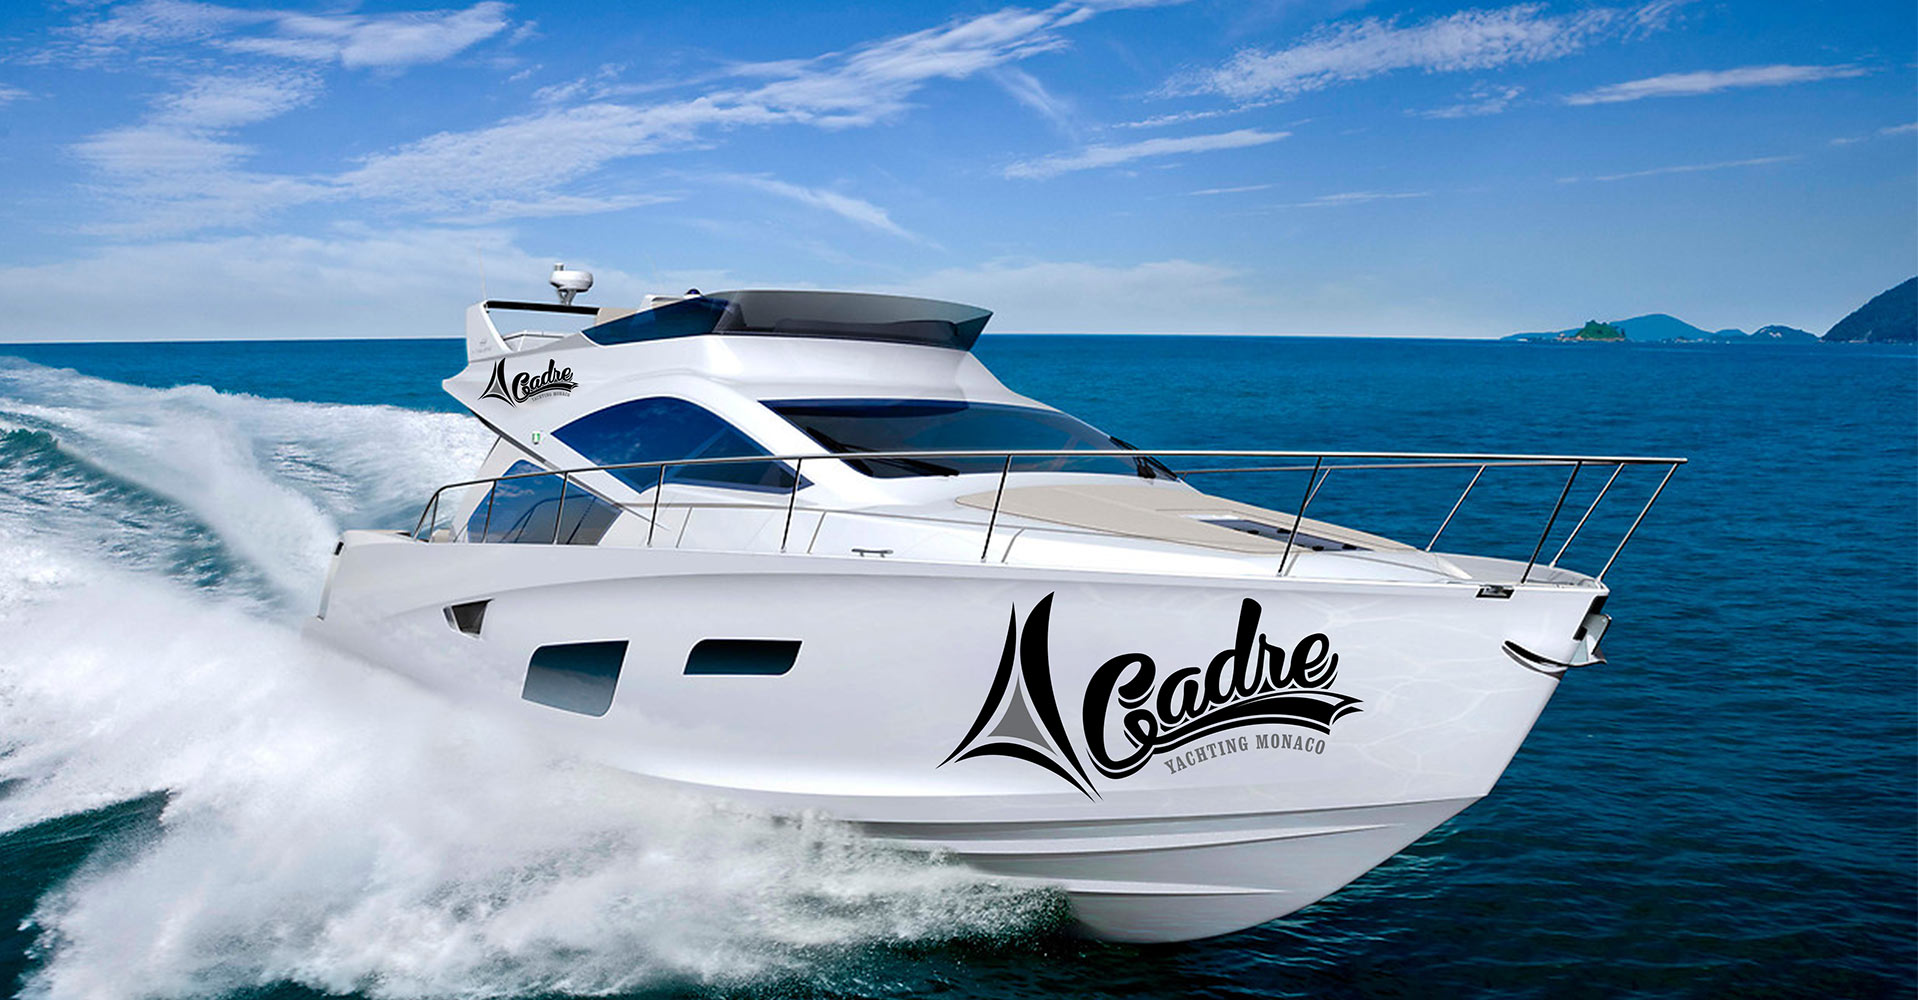 Logo Design by lagalag - Entry No. 101 in the Logo Design Contest New Logo Design for Cadre Yachting Monaco.